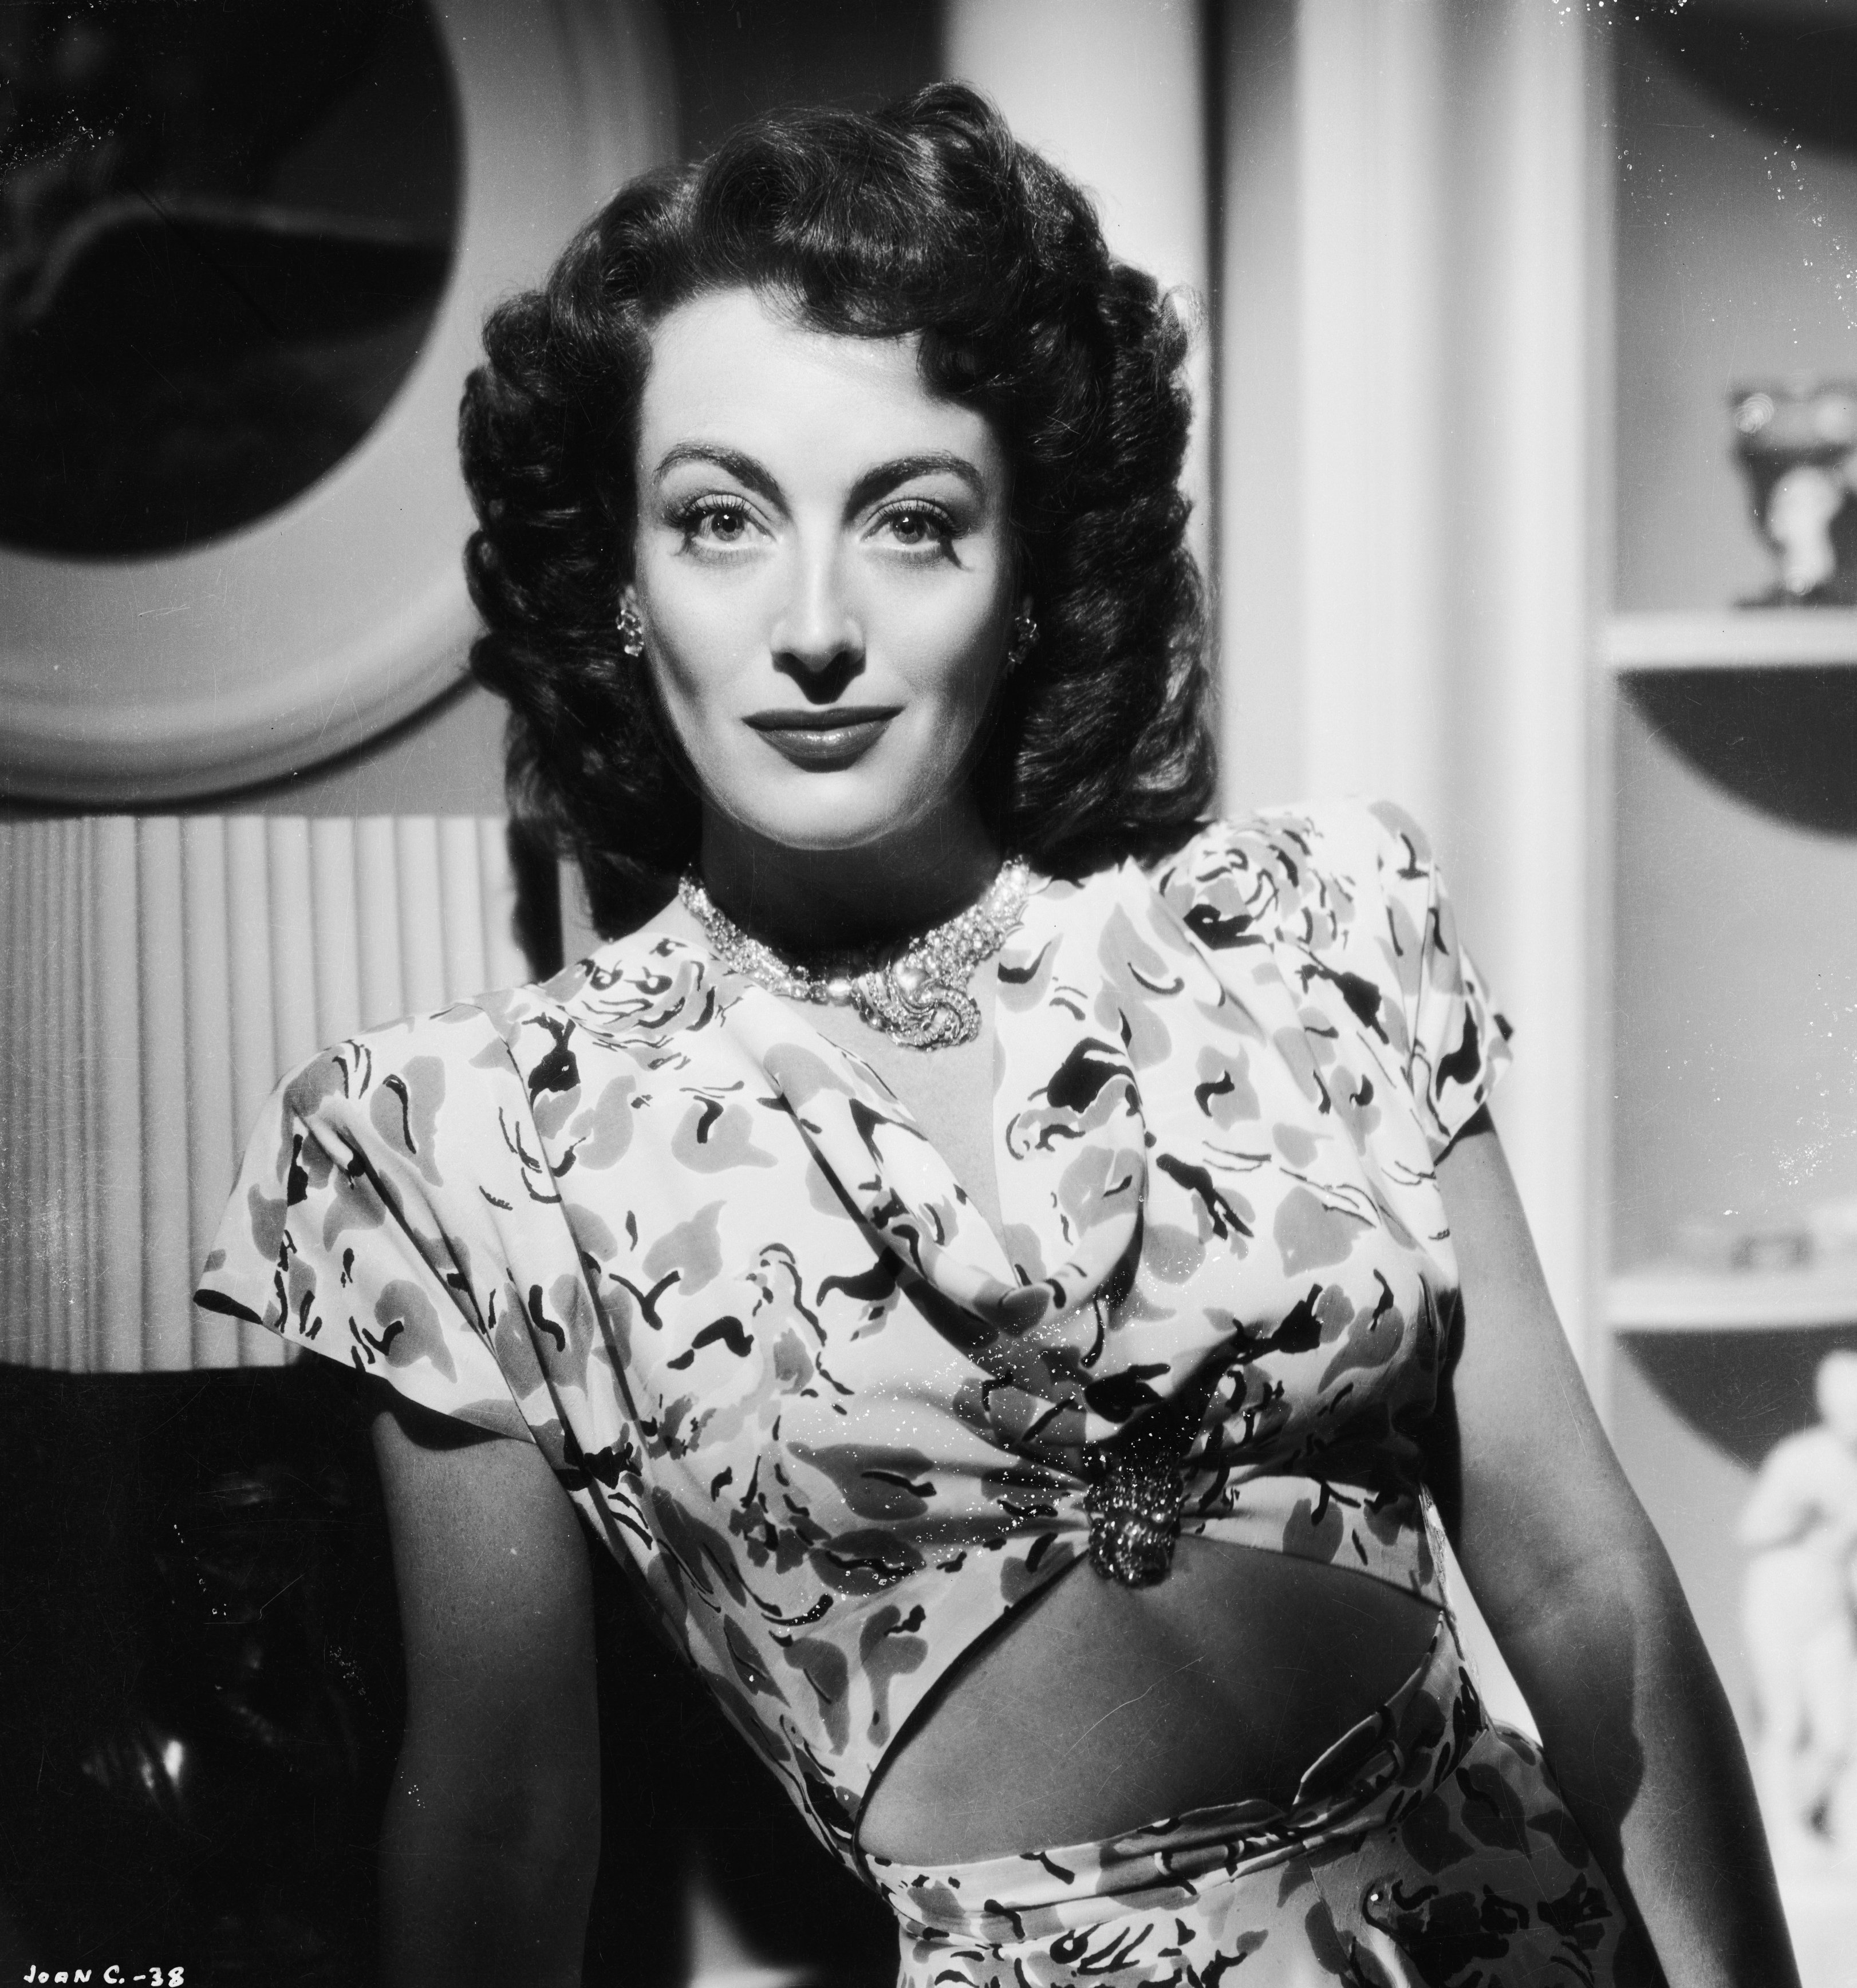 """Joan Crawford in her starring role in """"Mildred Pierce,"""" circa 1944 